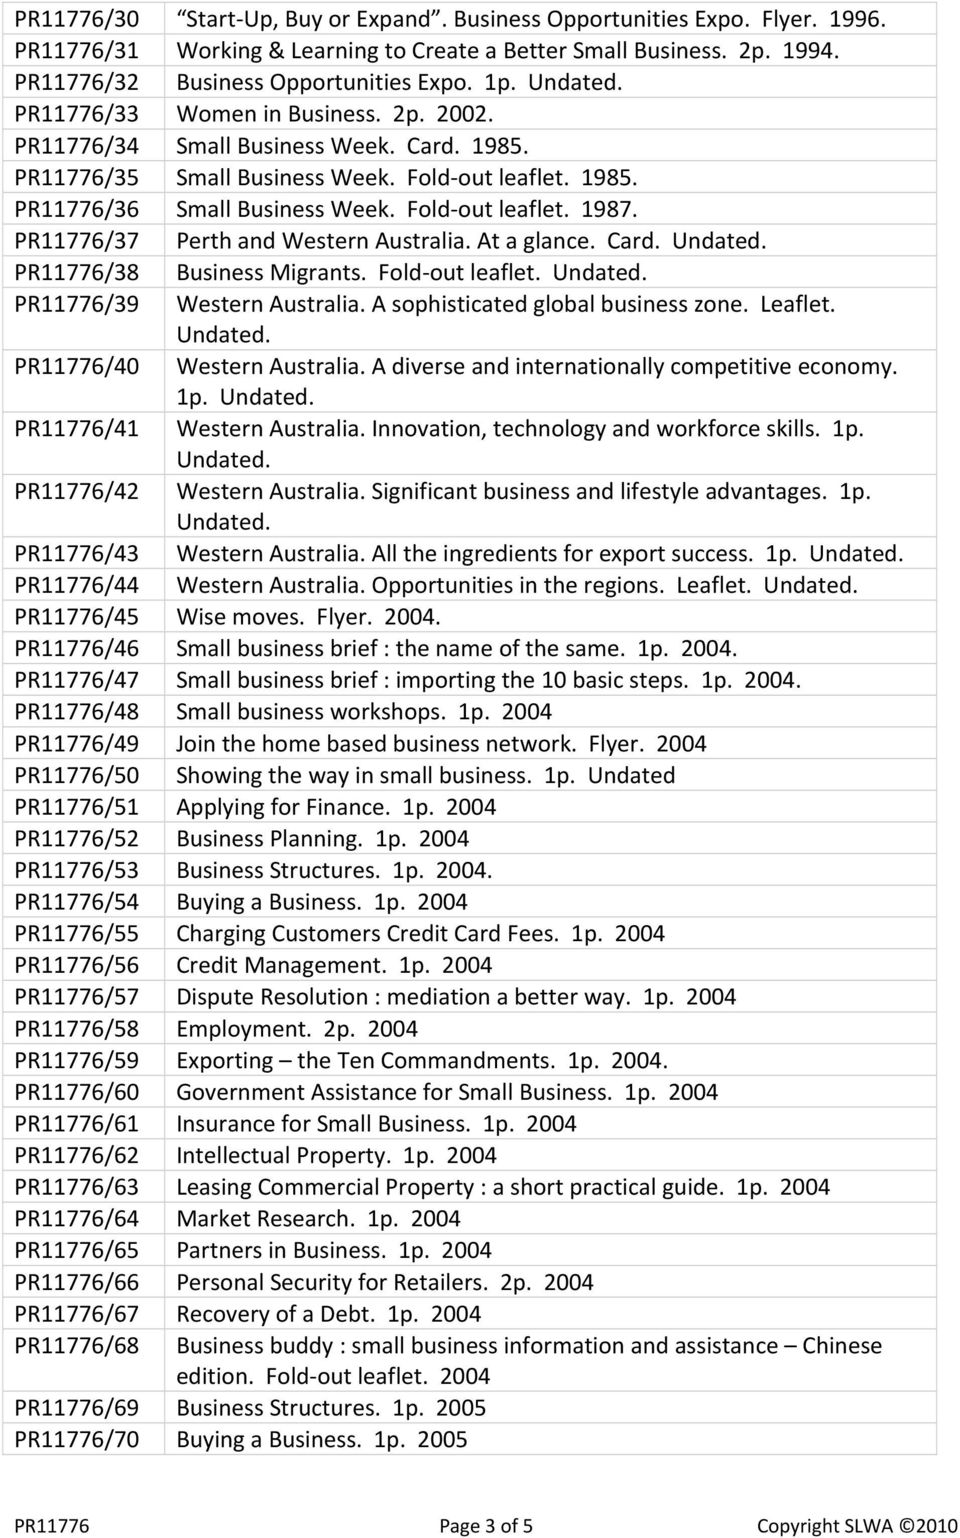 PR11776/37 Perth and Western Australia. At a glance. Card. PR11776/38 Business Migrants. Fold out leaflet. PR11776/39 Western Australia. A sophisticated global business zone. Leaflet.